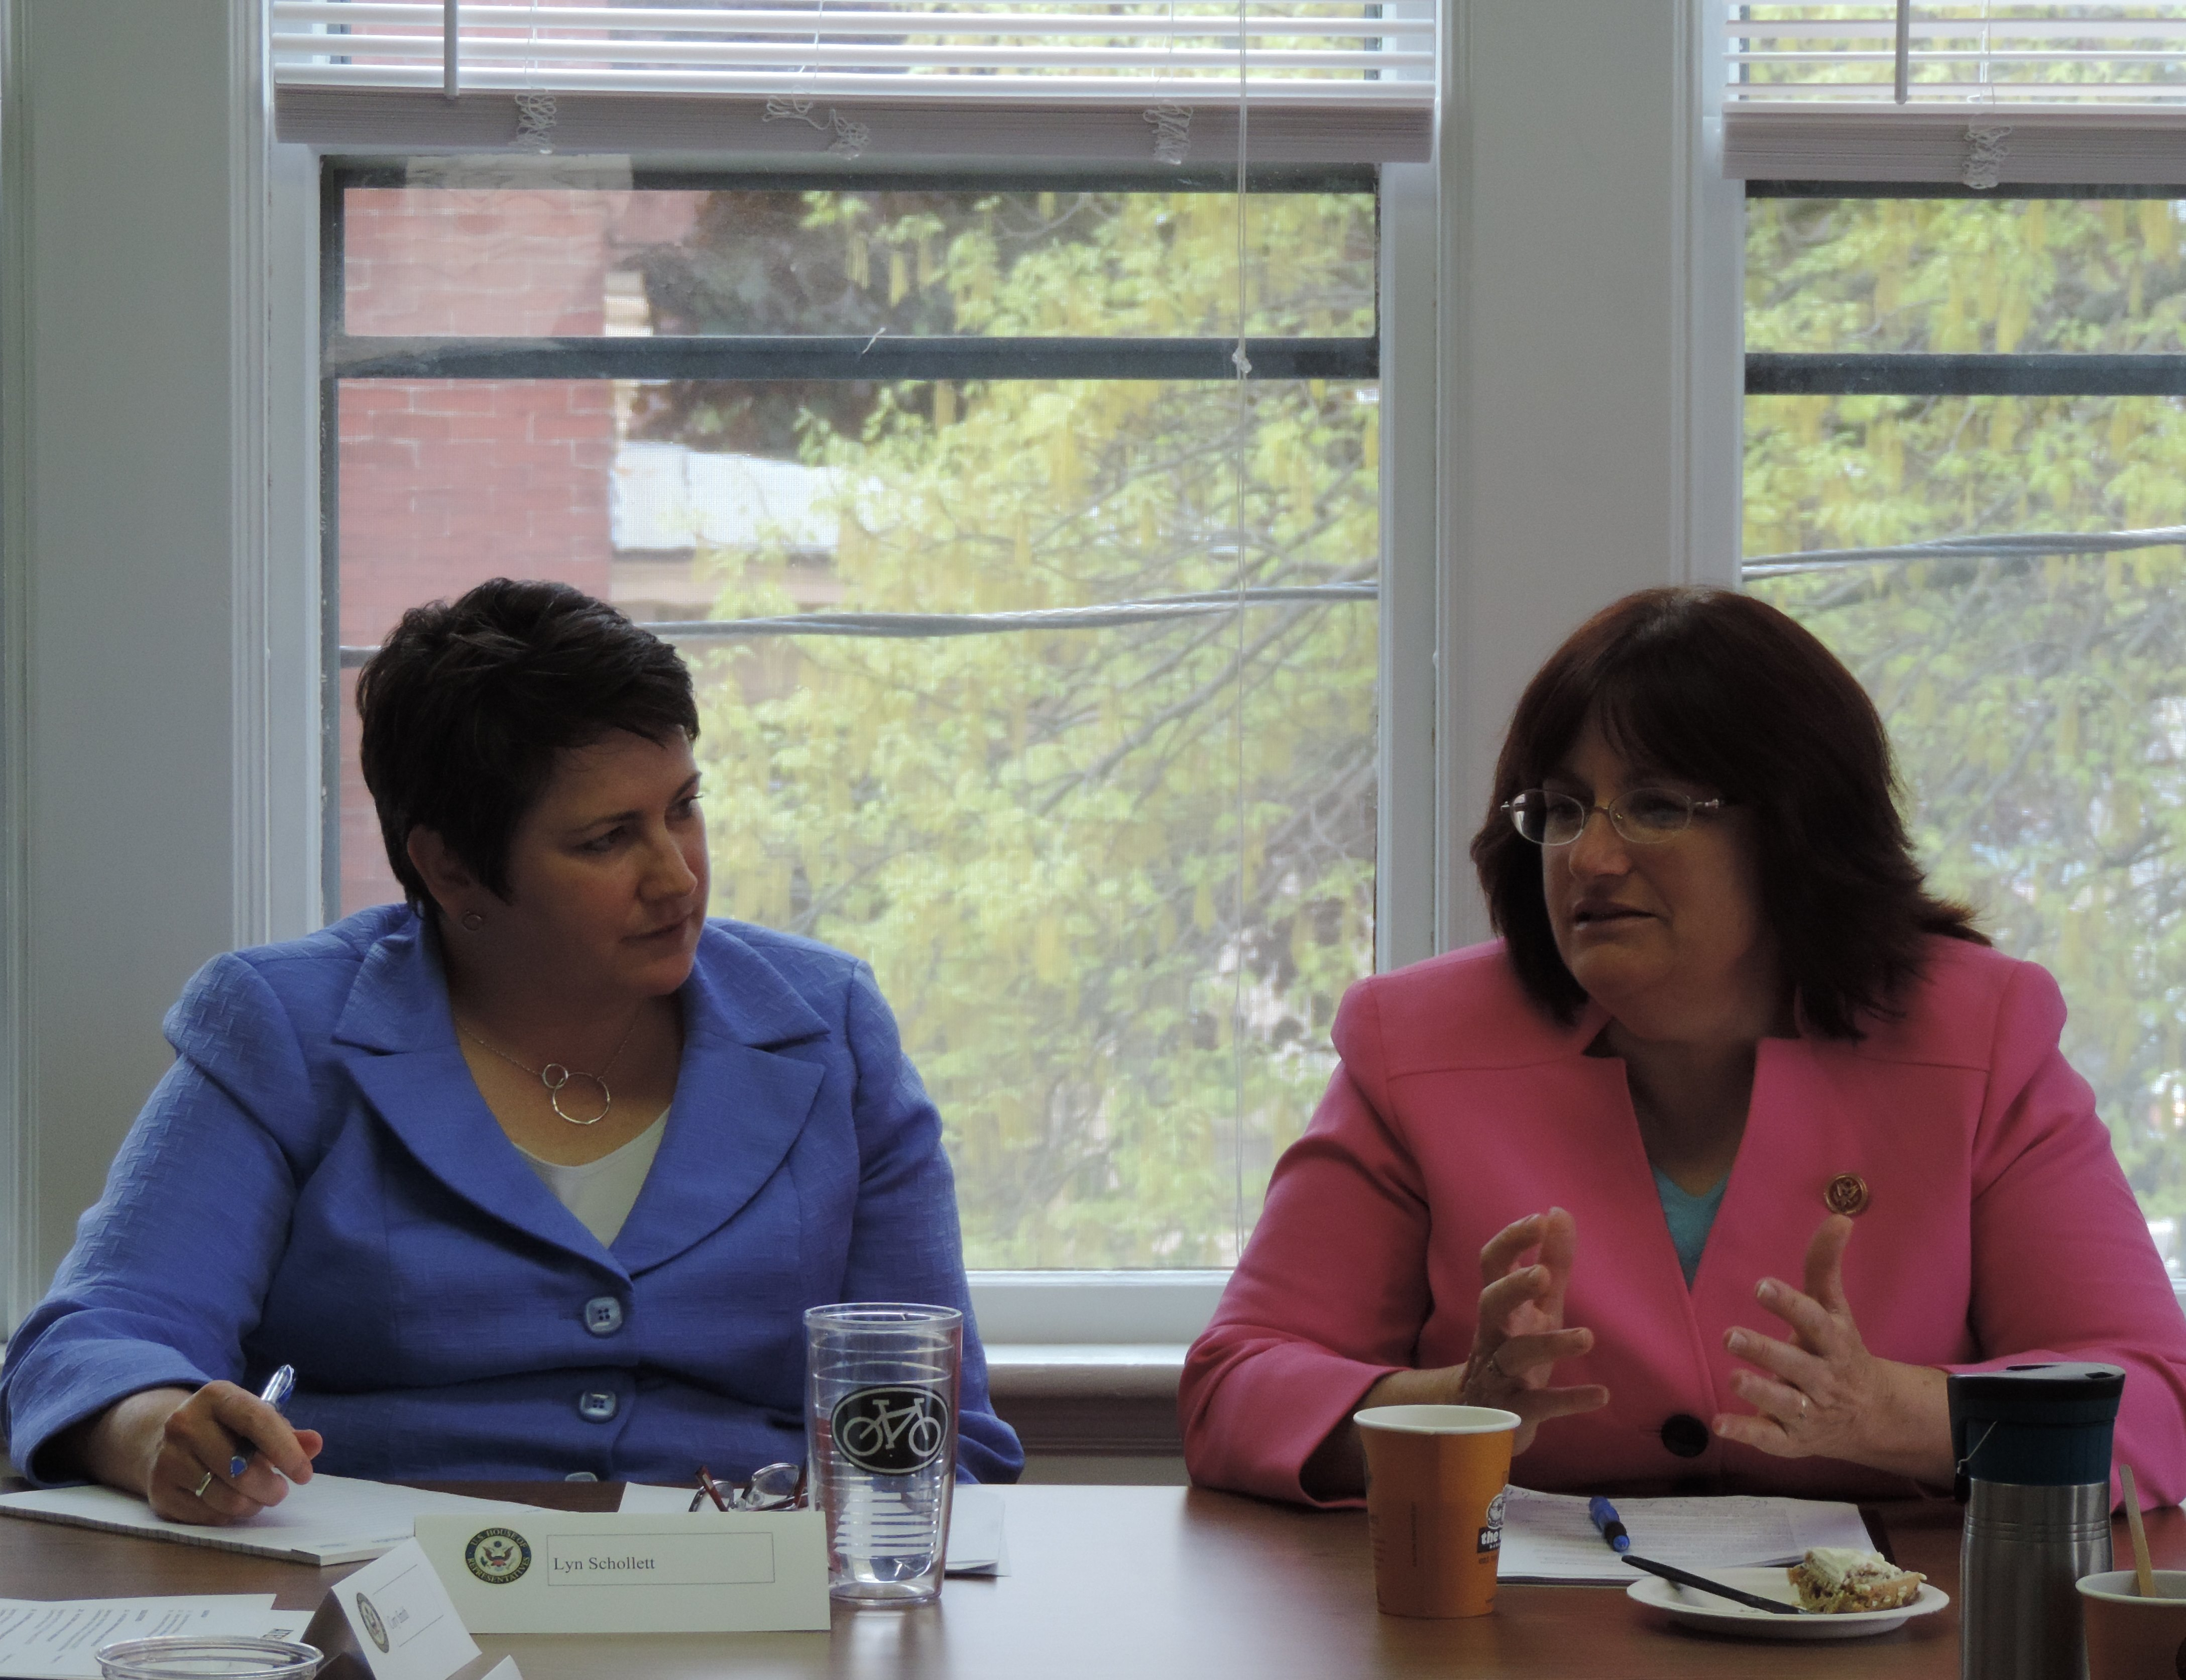 Congresswoman Kuster discusses efforts to curb human trafficking around the globe